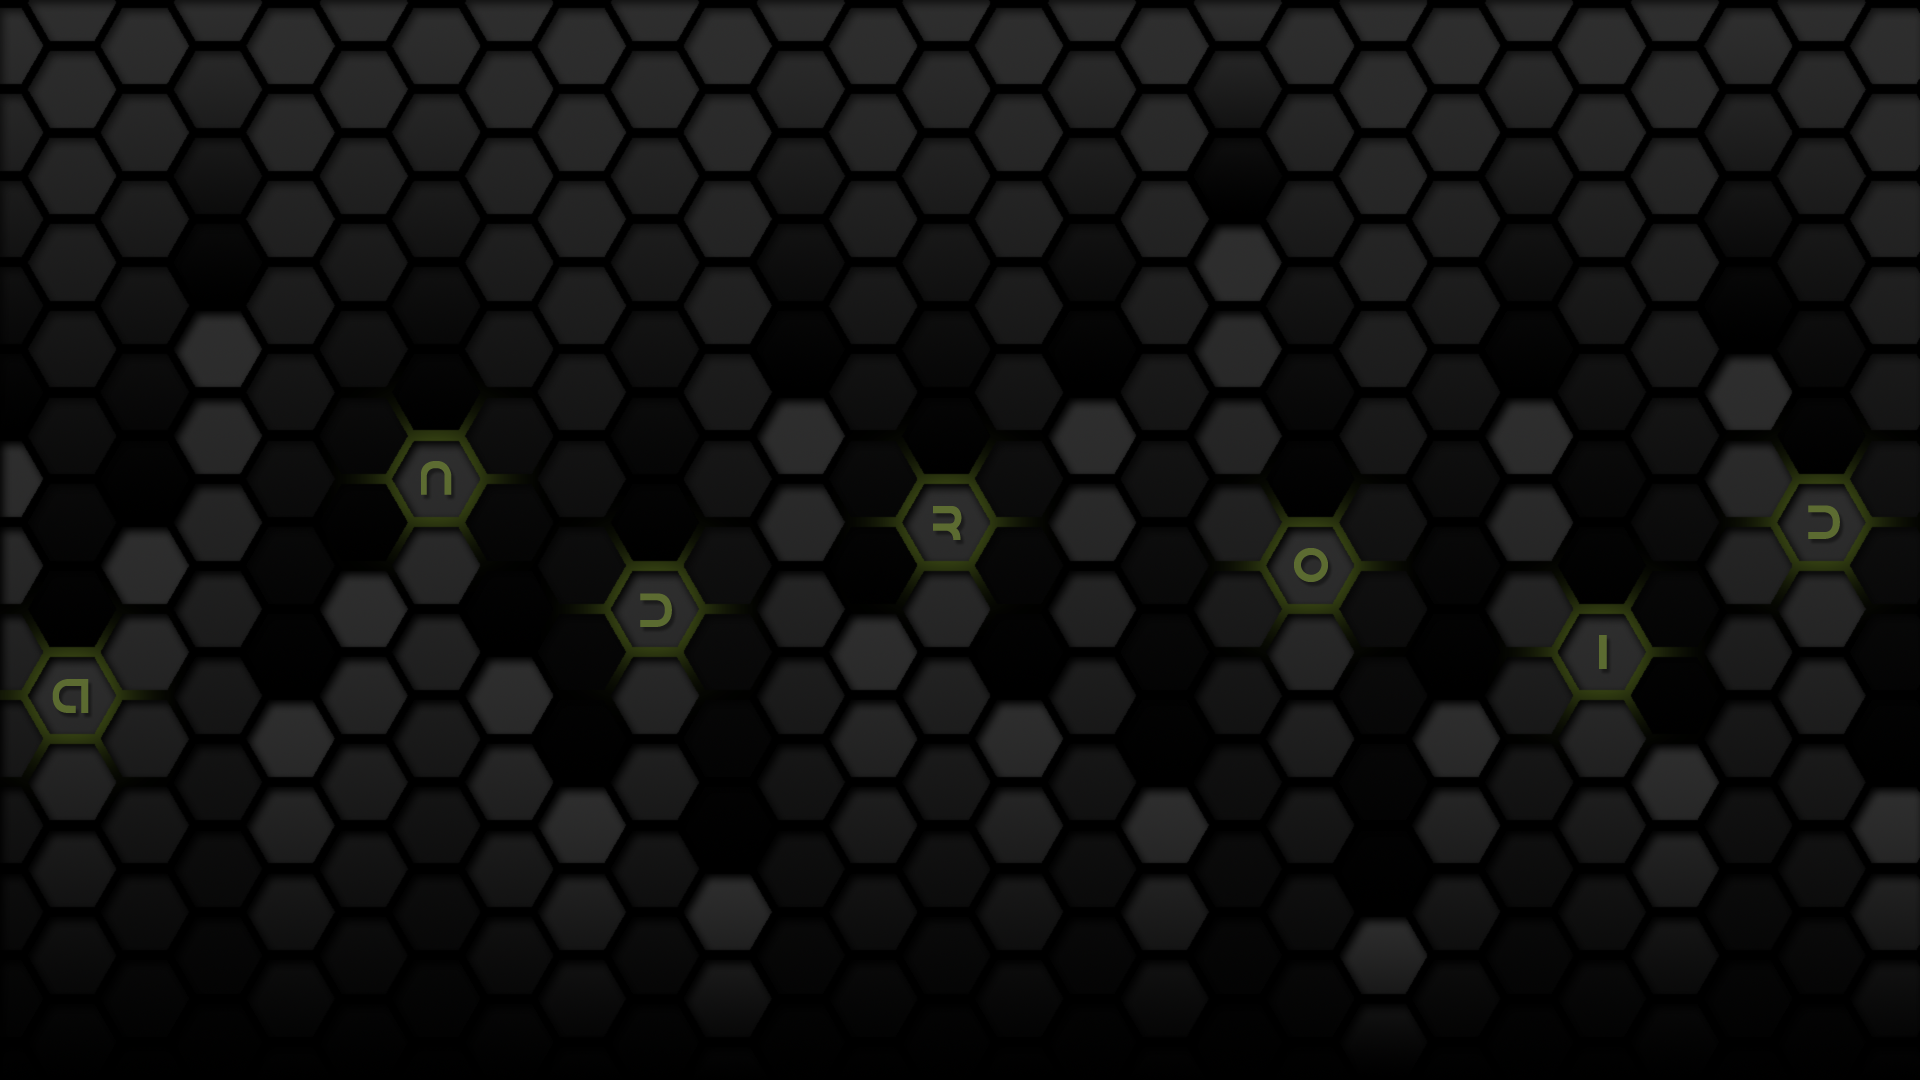 File Name download android Honeycomb hd Wallpaper 1920x1080